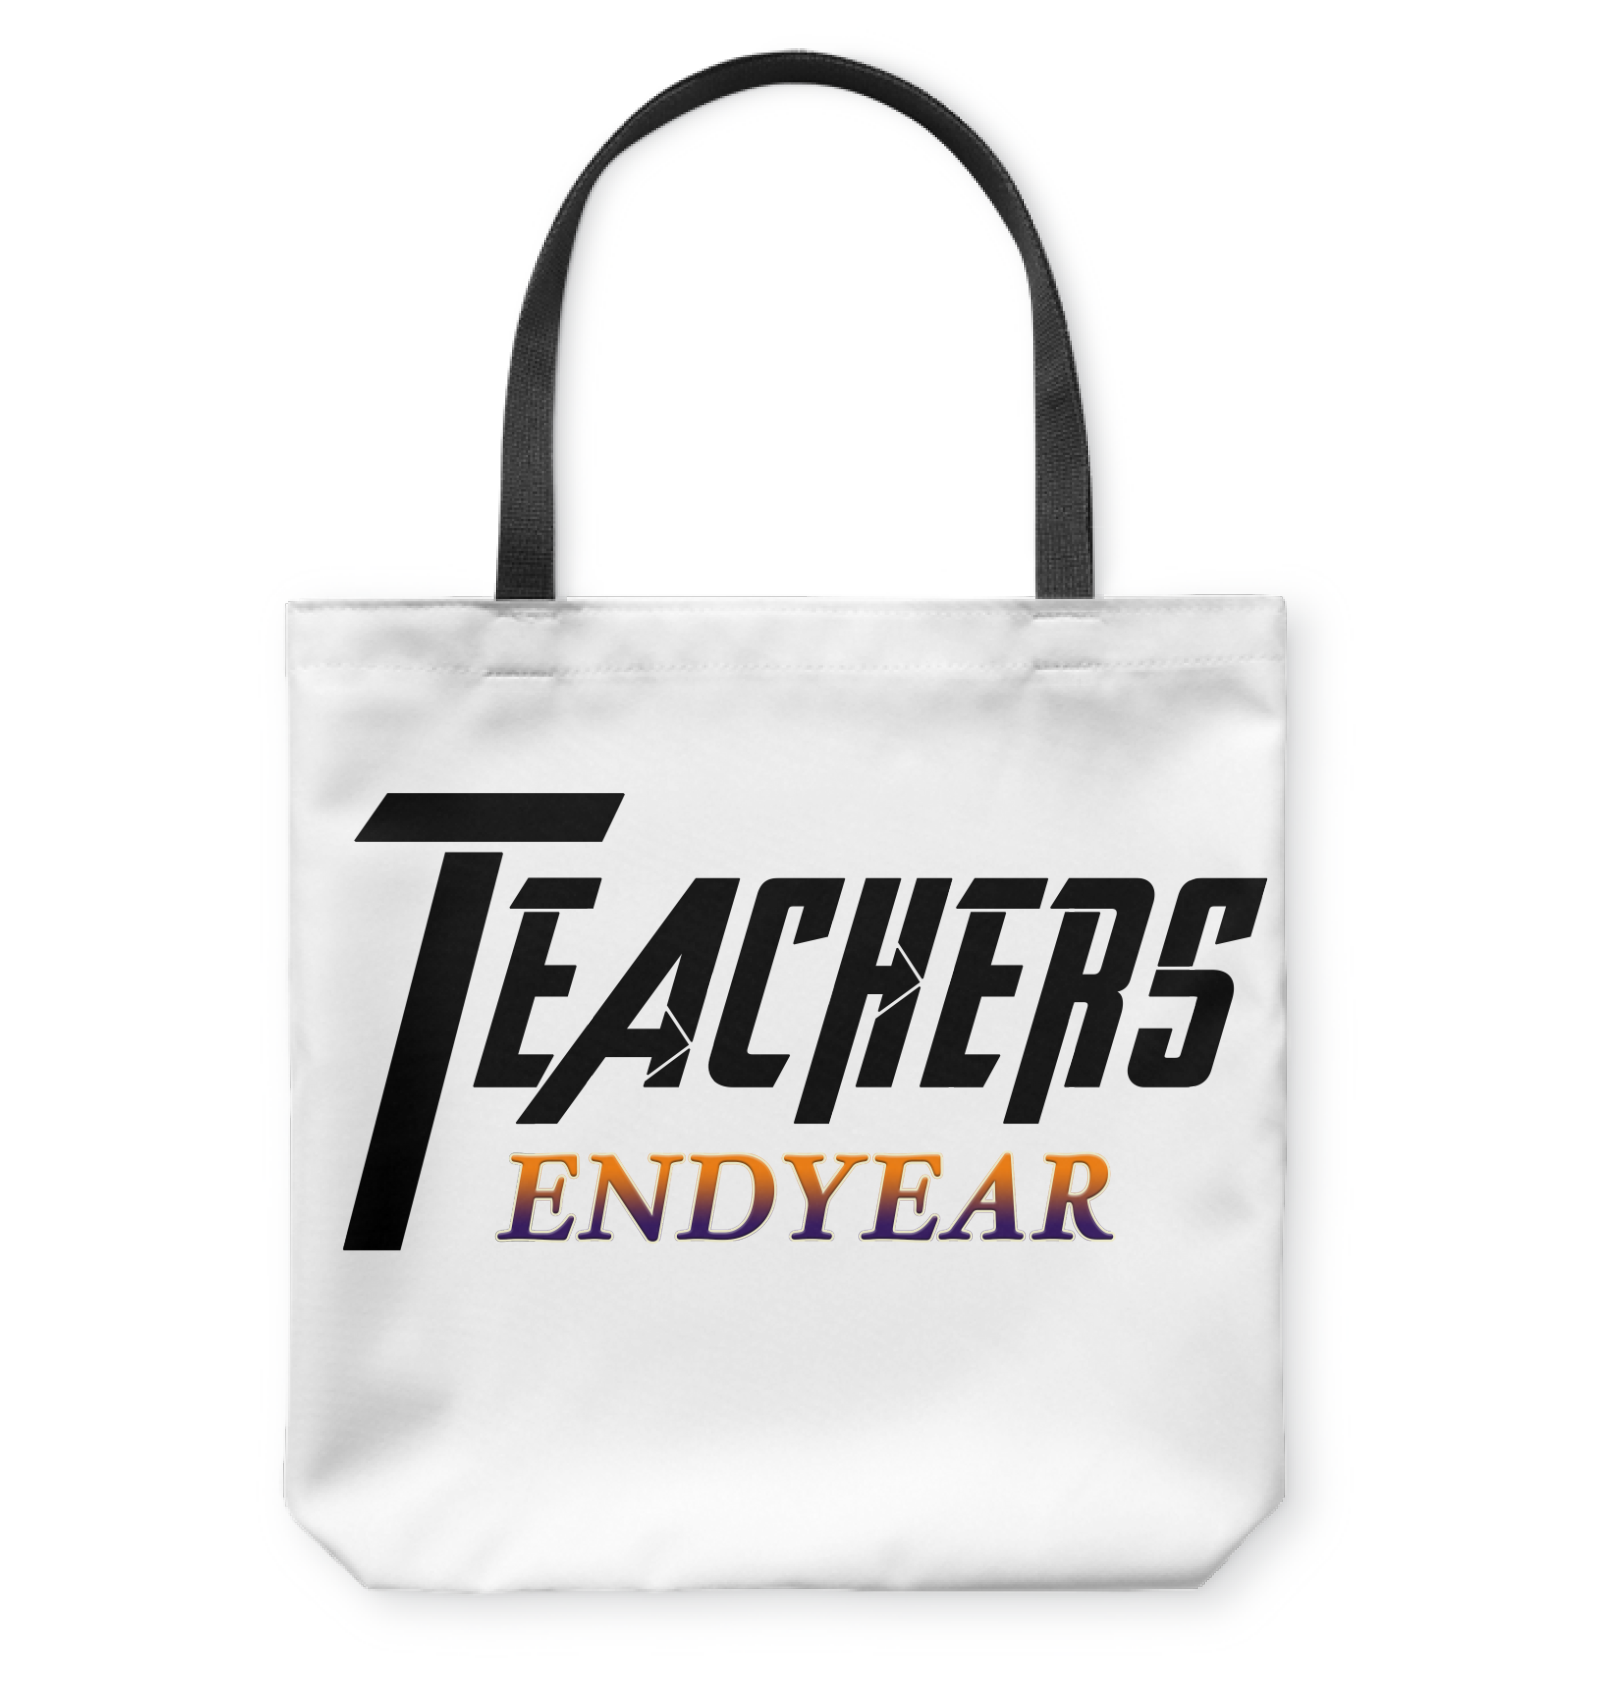 VIRA endyear tote bag for awesome teachers